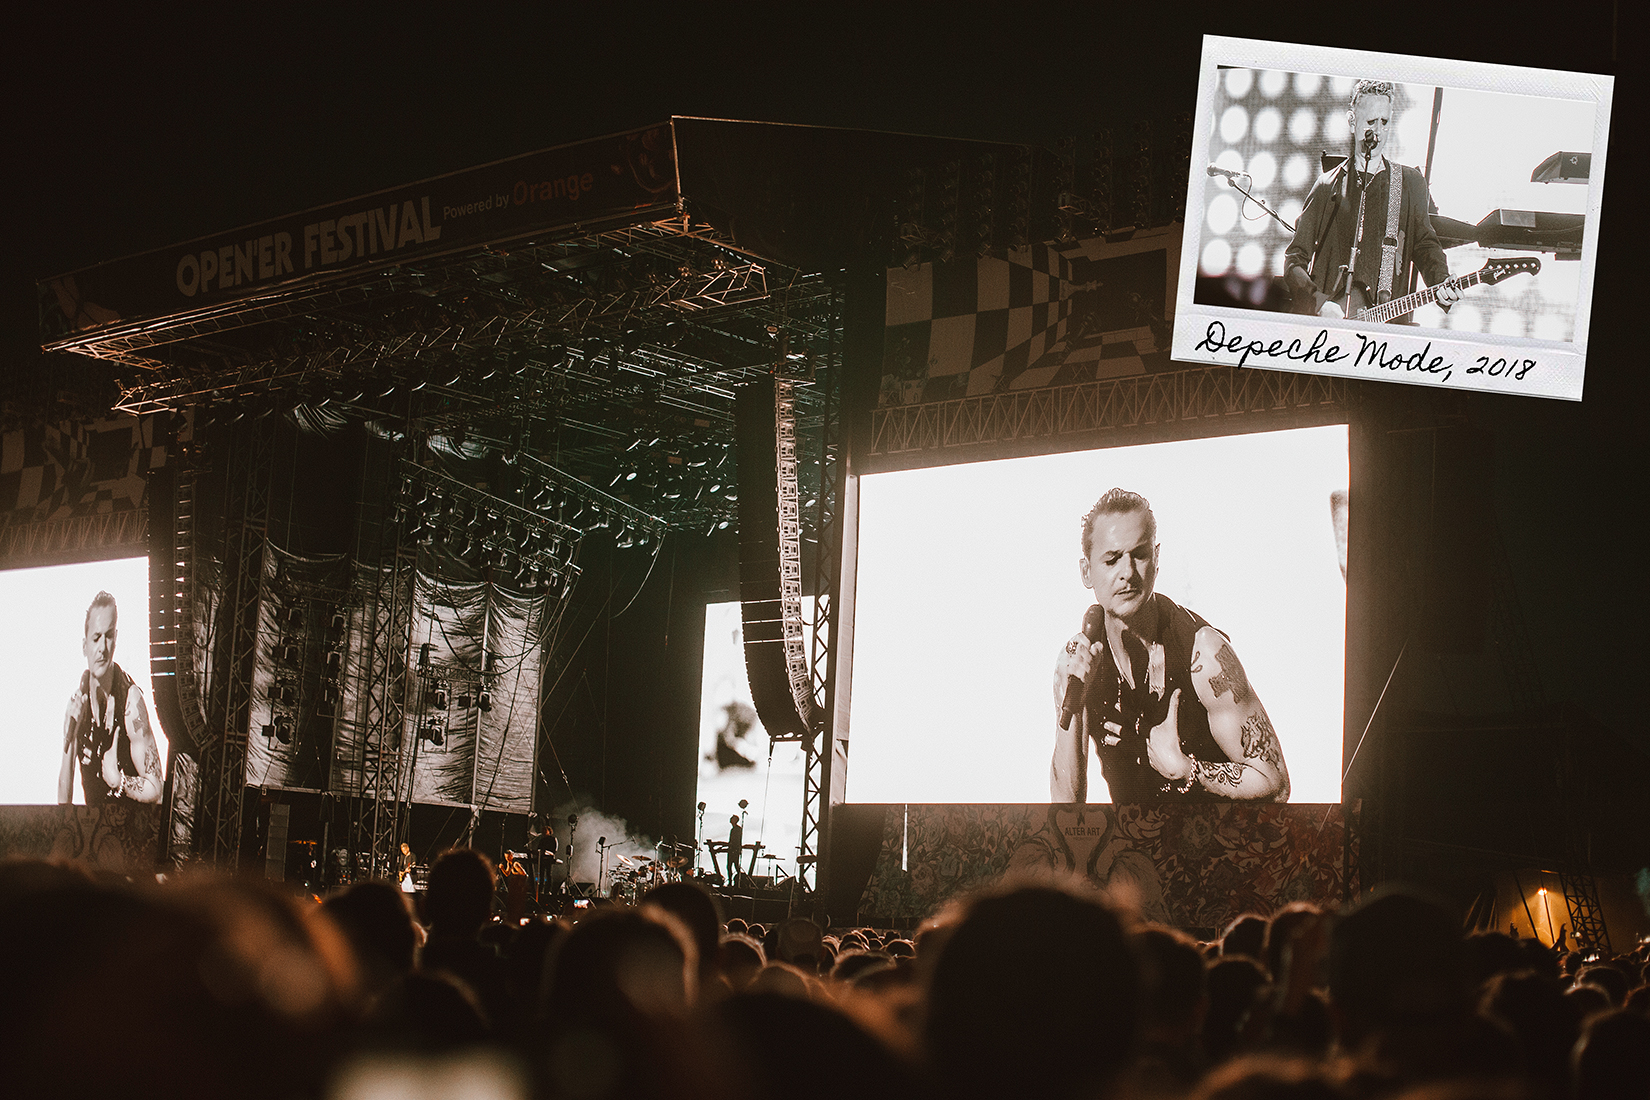 Depeche Mode live in Open'er festival 2018 by Ailera Stone